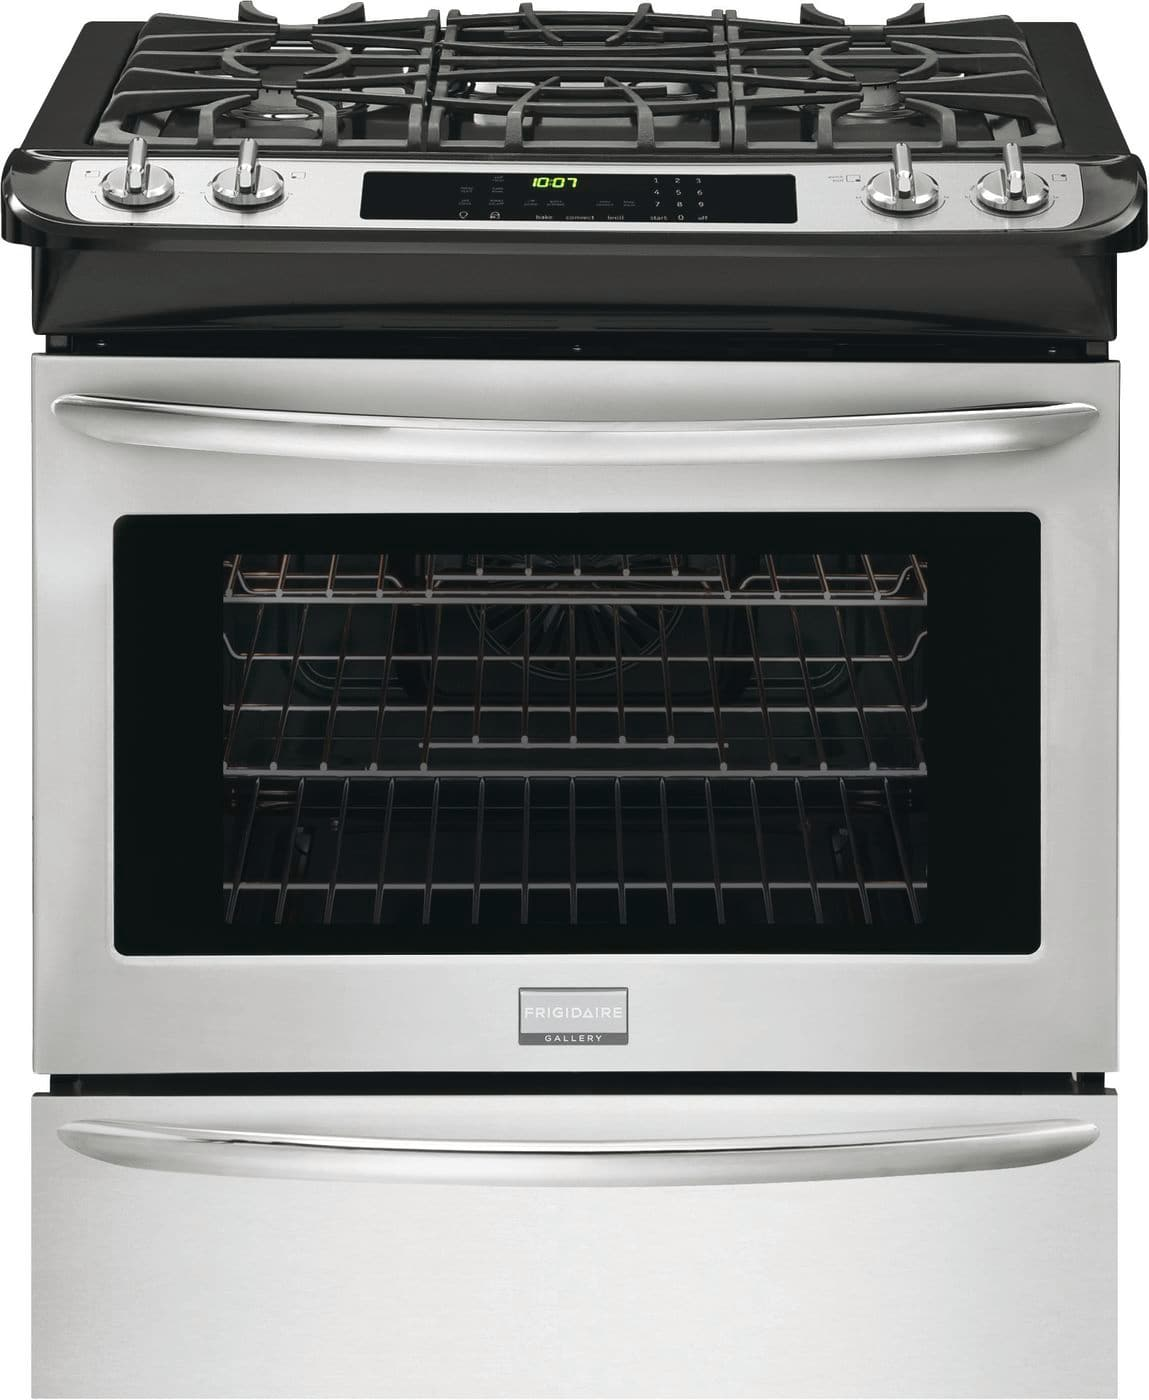 "Frigidaire 30"" Slide-In Gas Range"